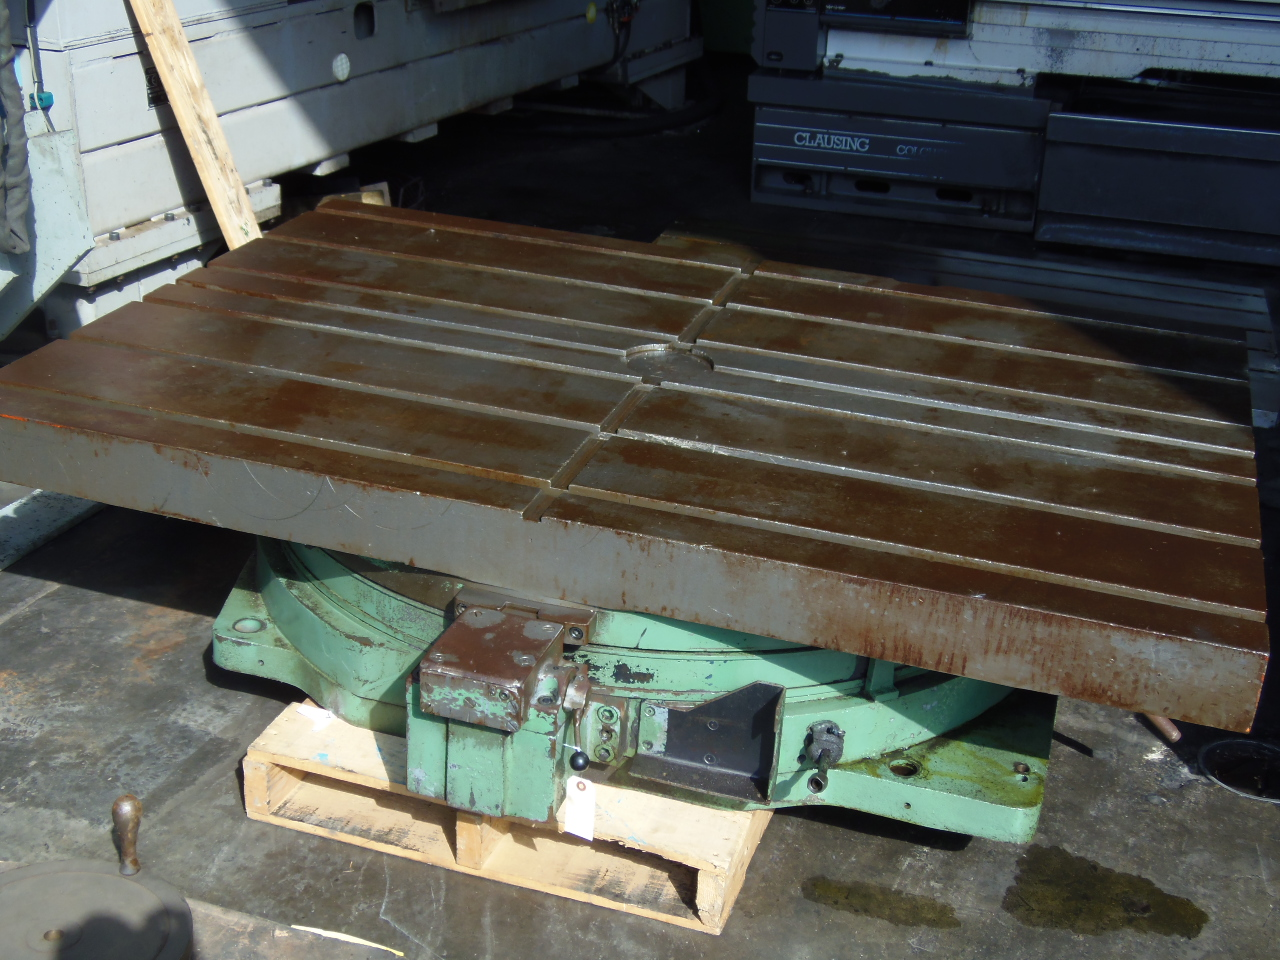 "50"" X 72"" CINCINNATI GILBERT INDEXING ROTARY TABLE, HYDRAULIC UNIT MISSING"